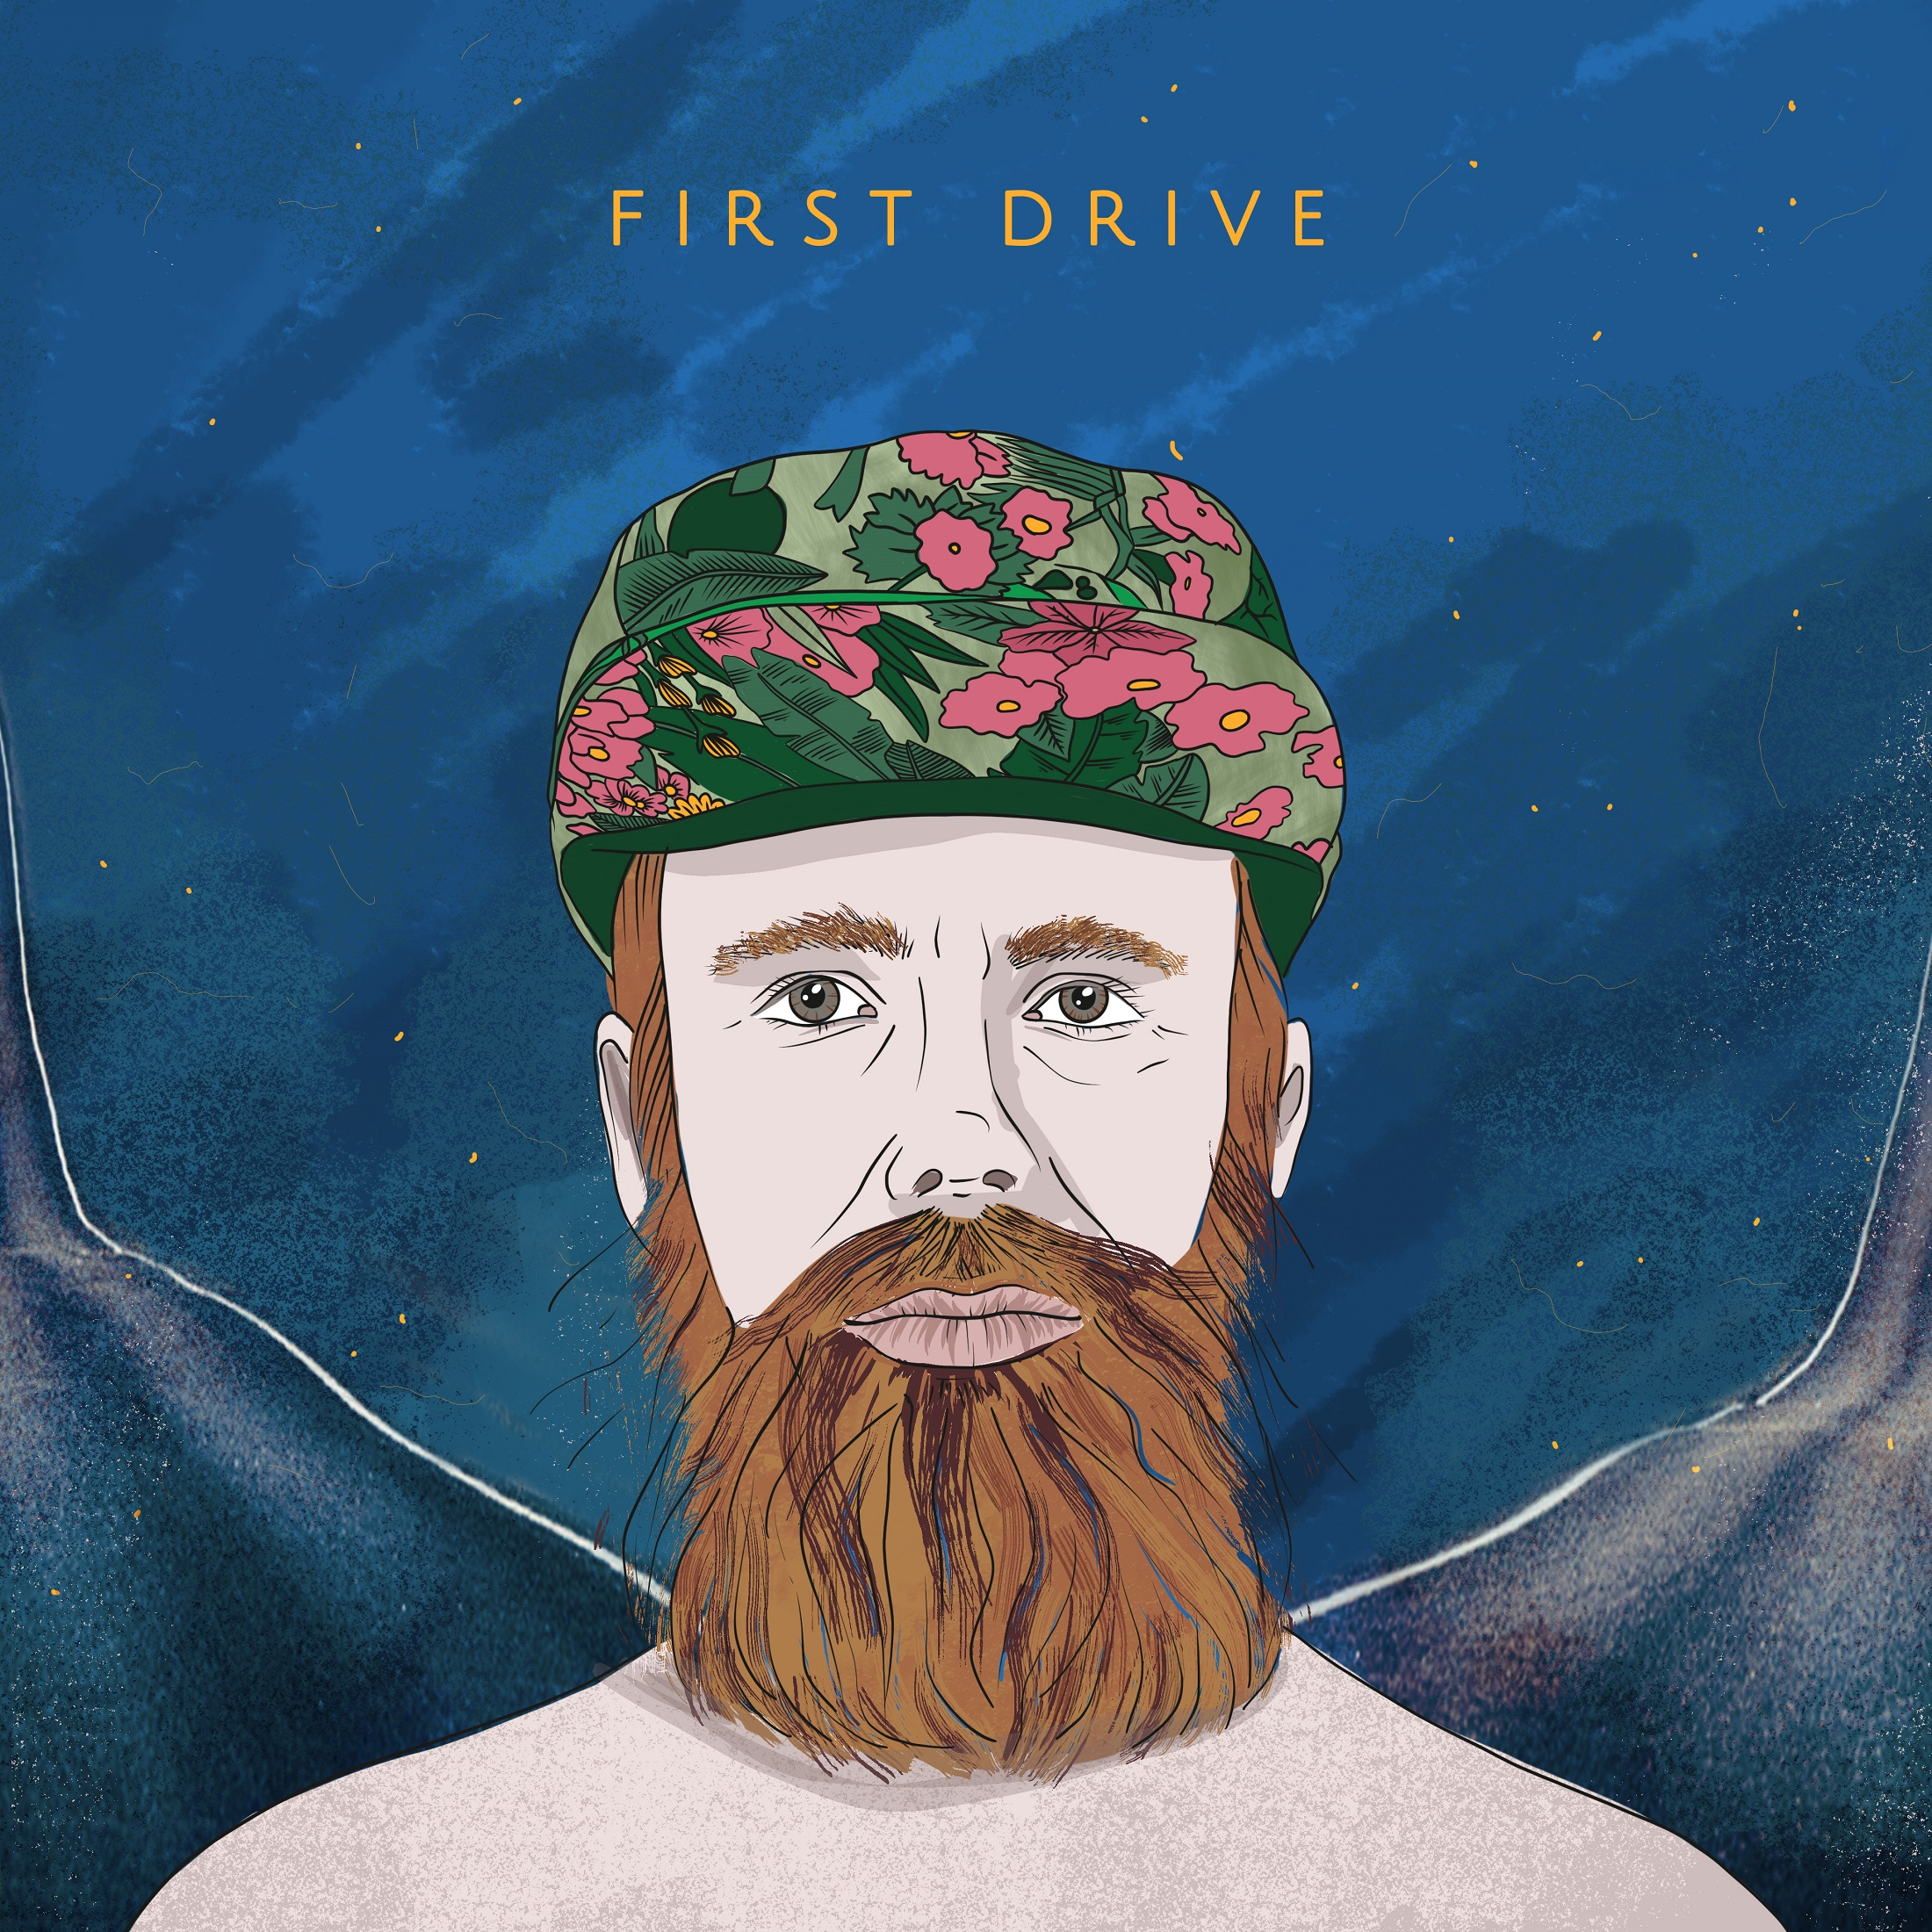 Pophop - First Drive (Acker Special 003) Image